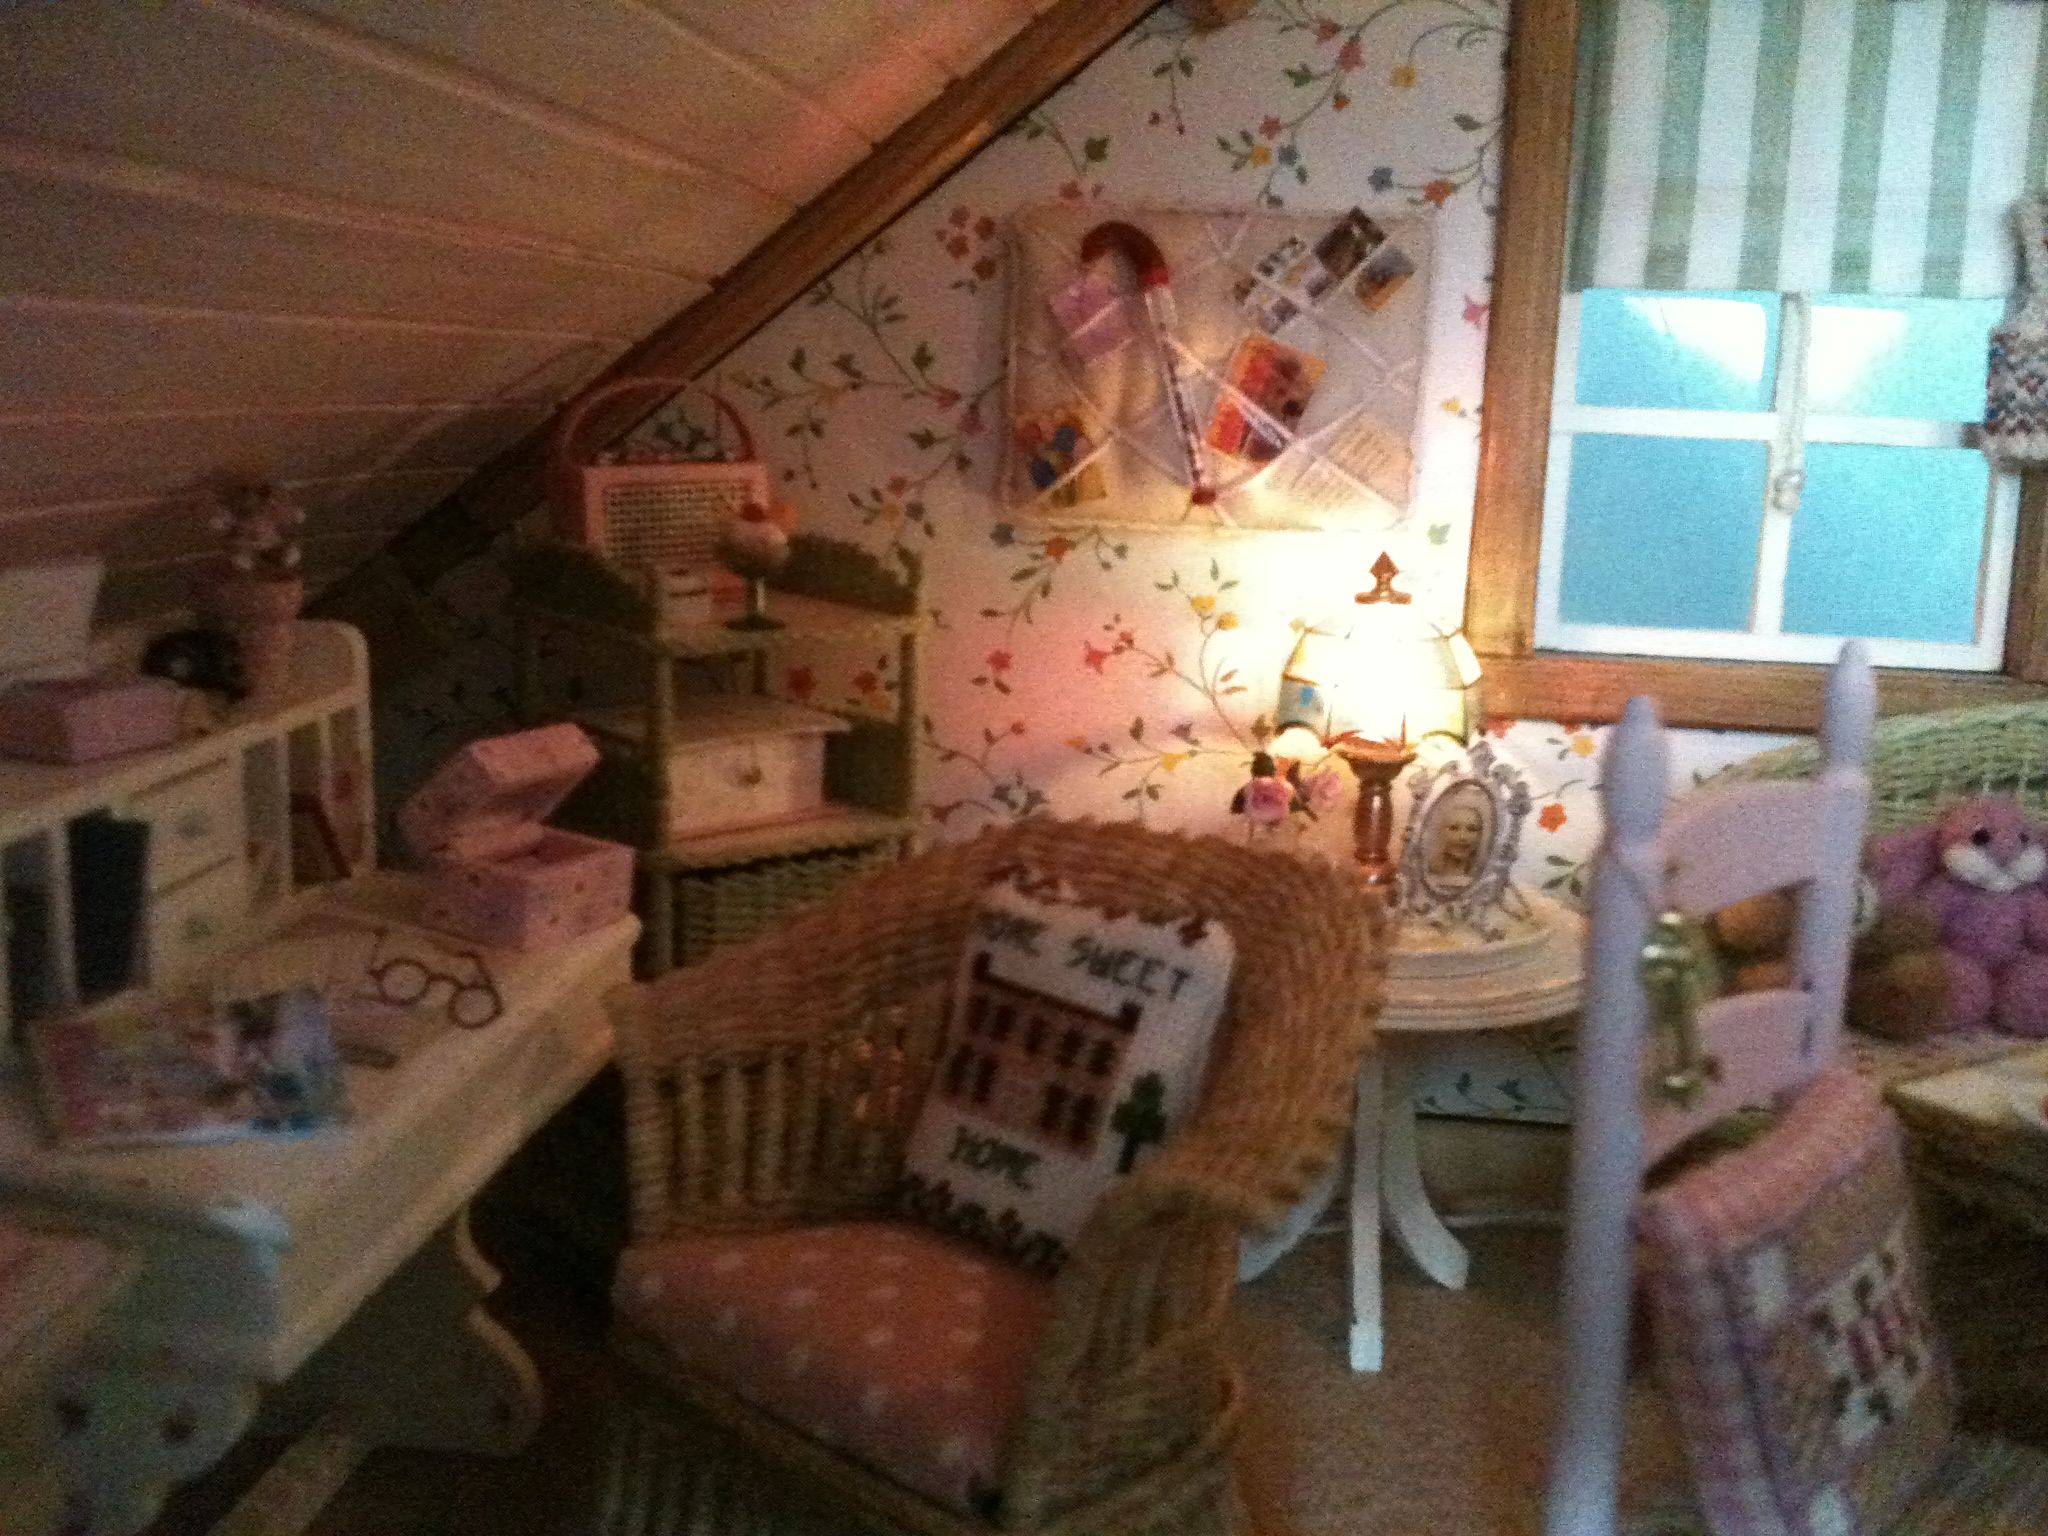 a view of my dollhouse cottage workroom / bedroom